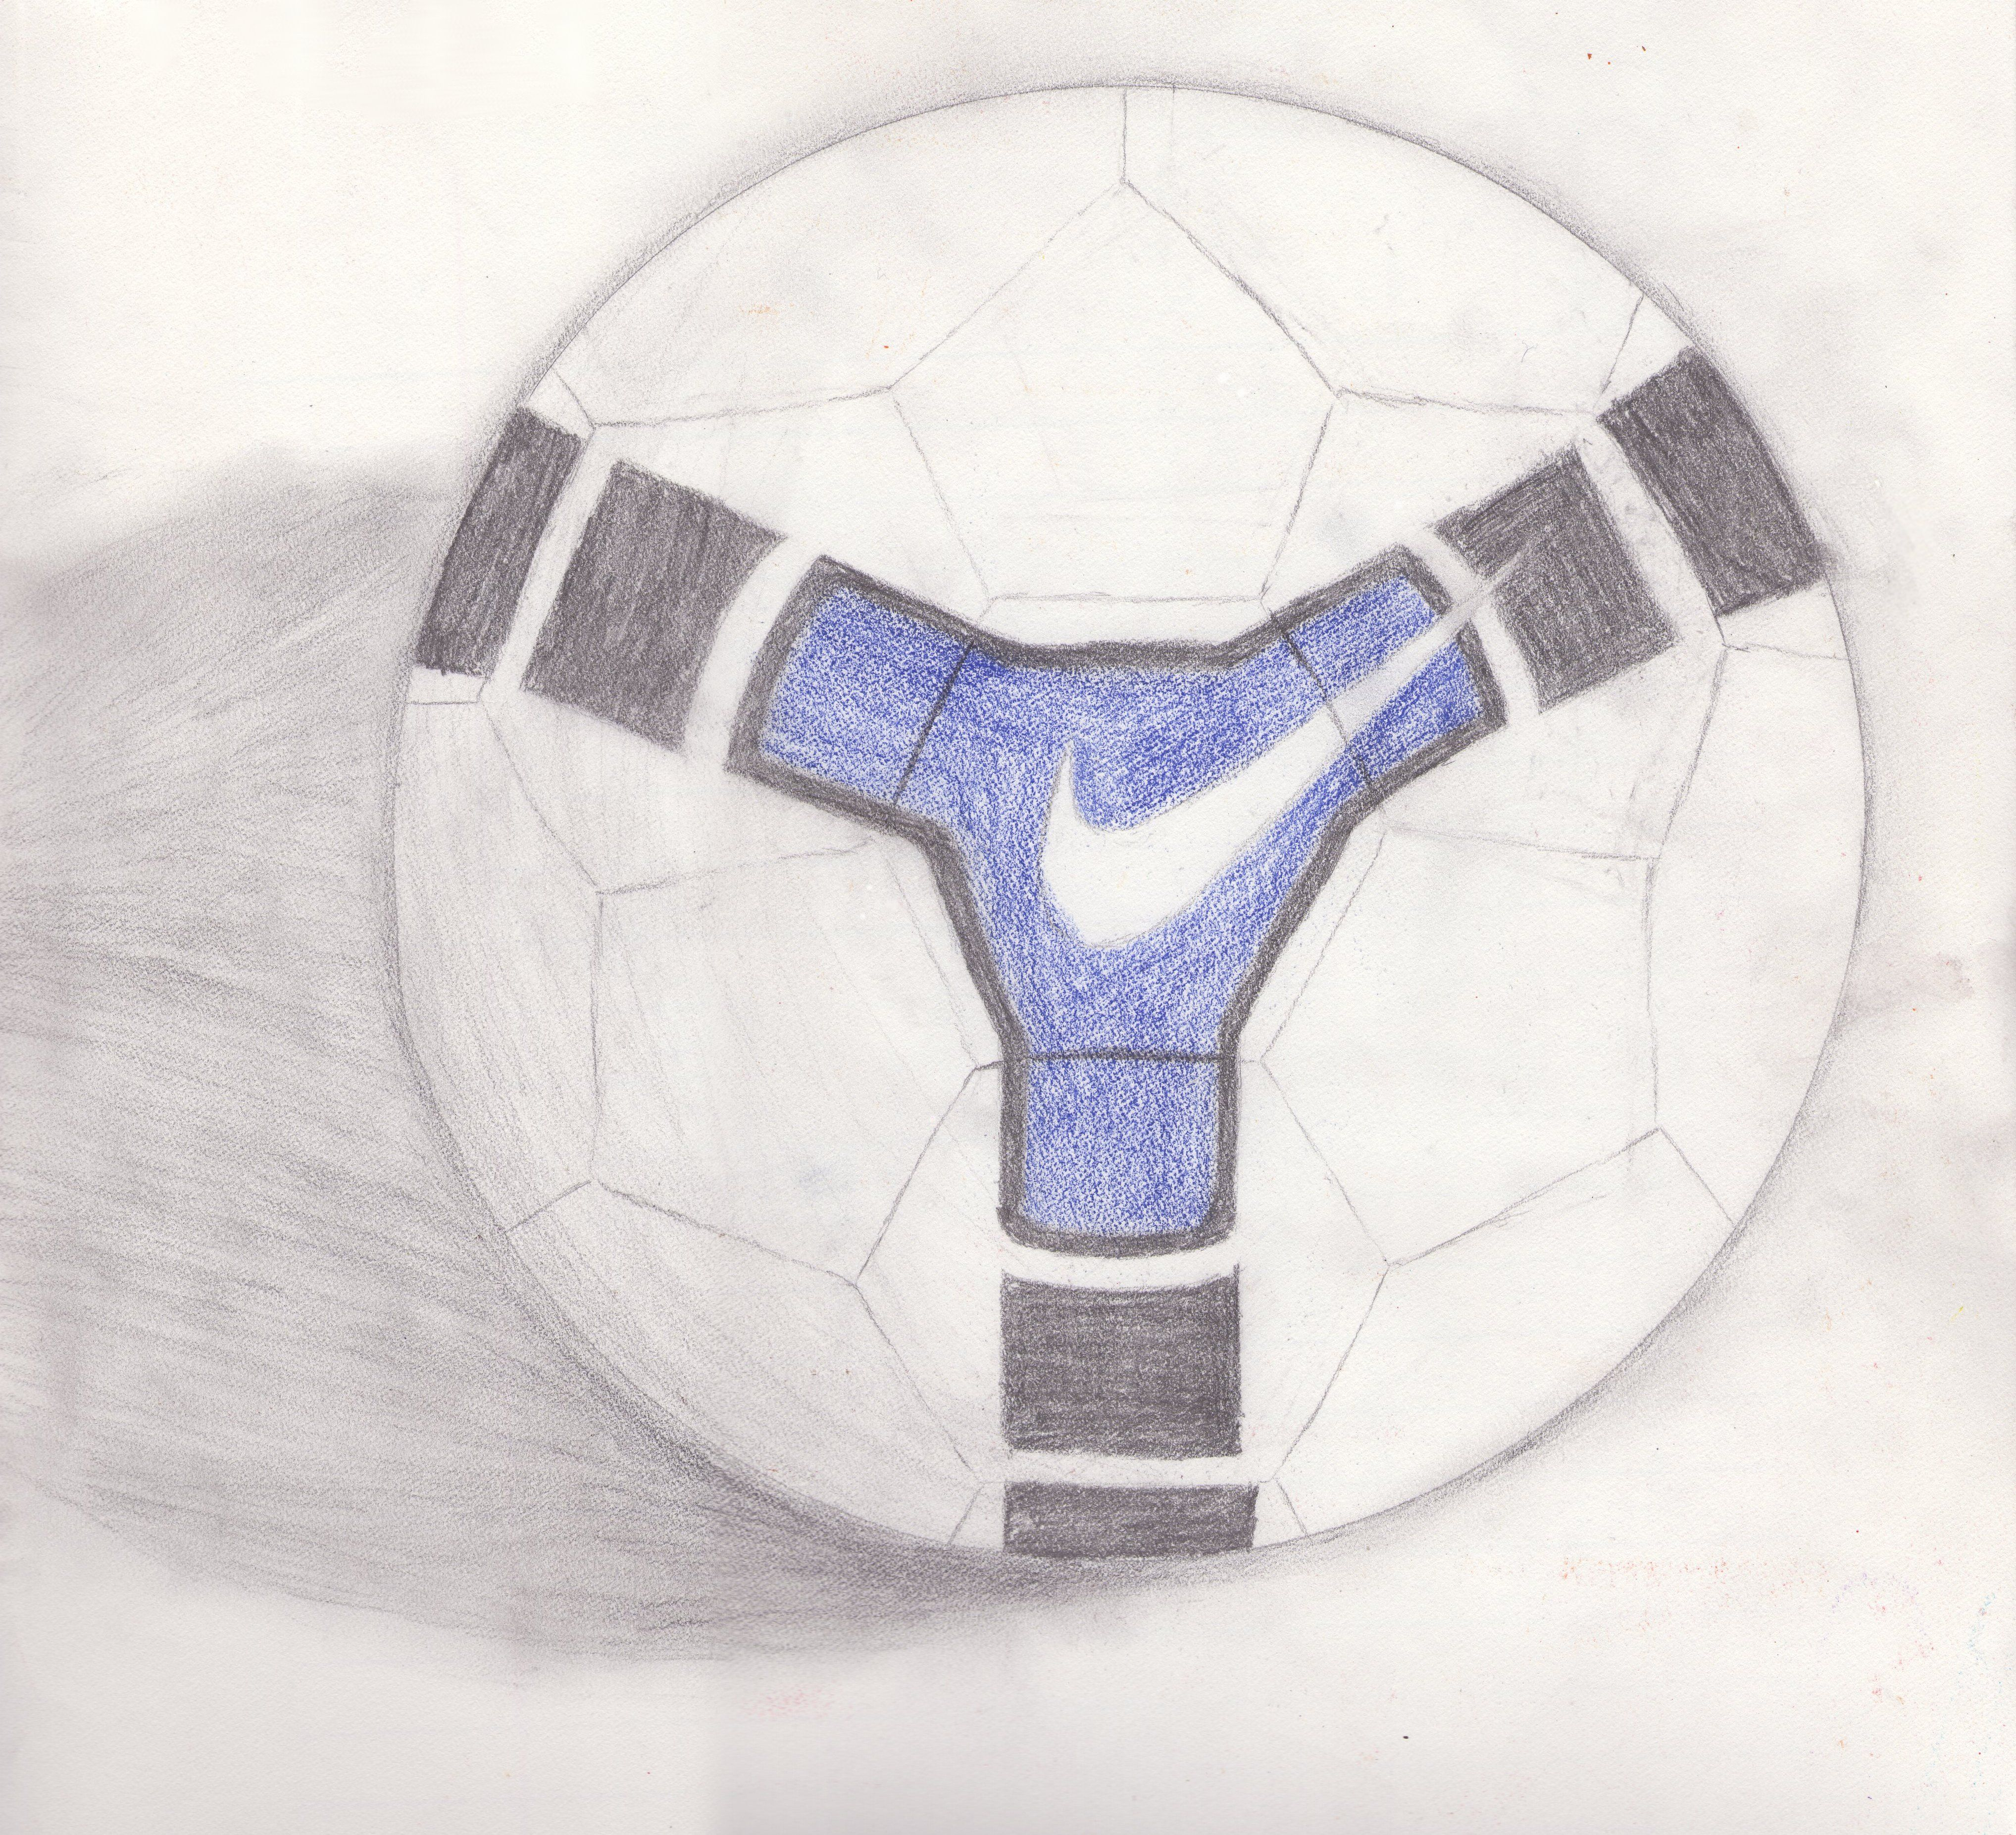 Nike Soccer Ball Drawing Background 1 Soccer Ball Soccer Drawing Nike Soccer Ball